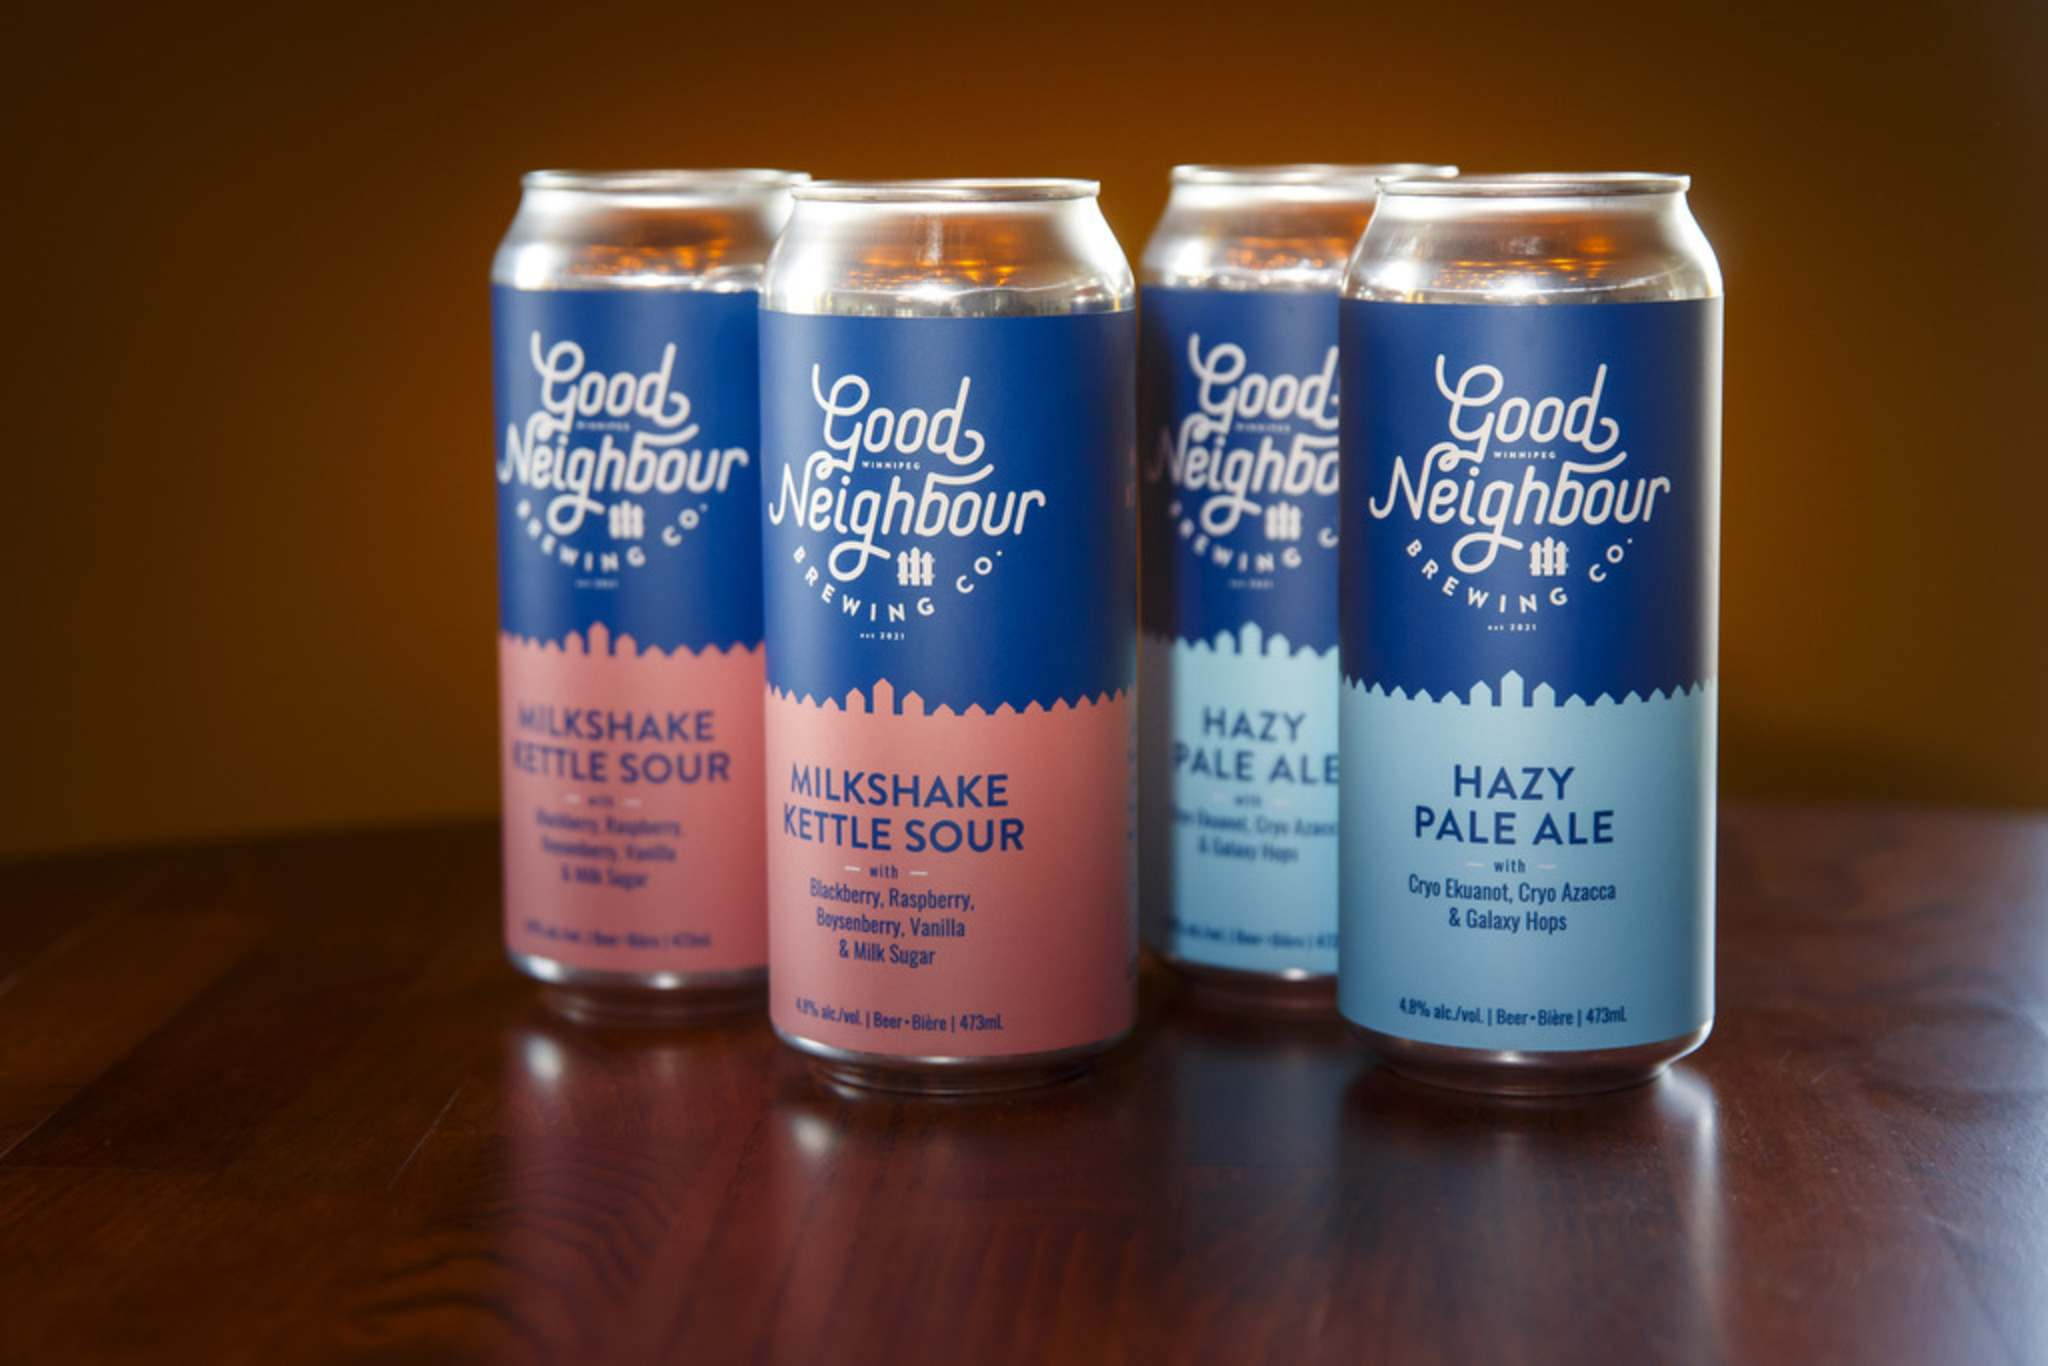 MIKE DEAL / WINNIPEG FREE PRESS</p><p>Good Neighbour Brewing is launching with two beers, Milkshake Kettle Sour and Hazy Pale Ale. </p>